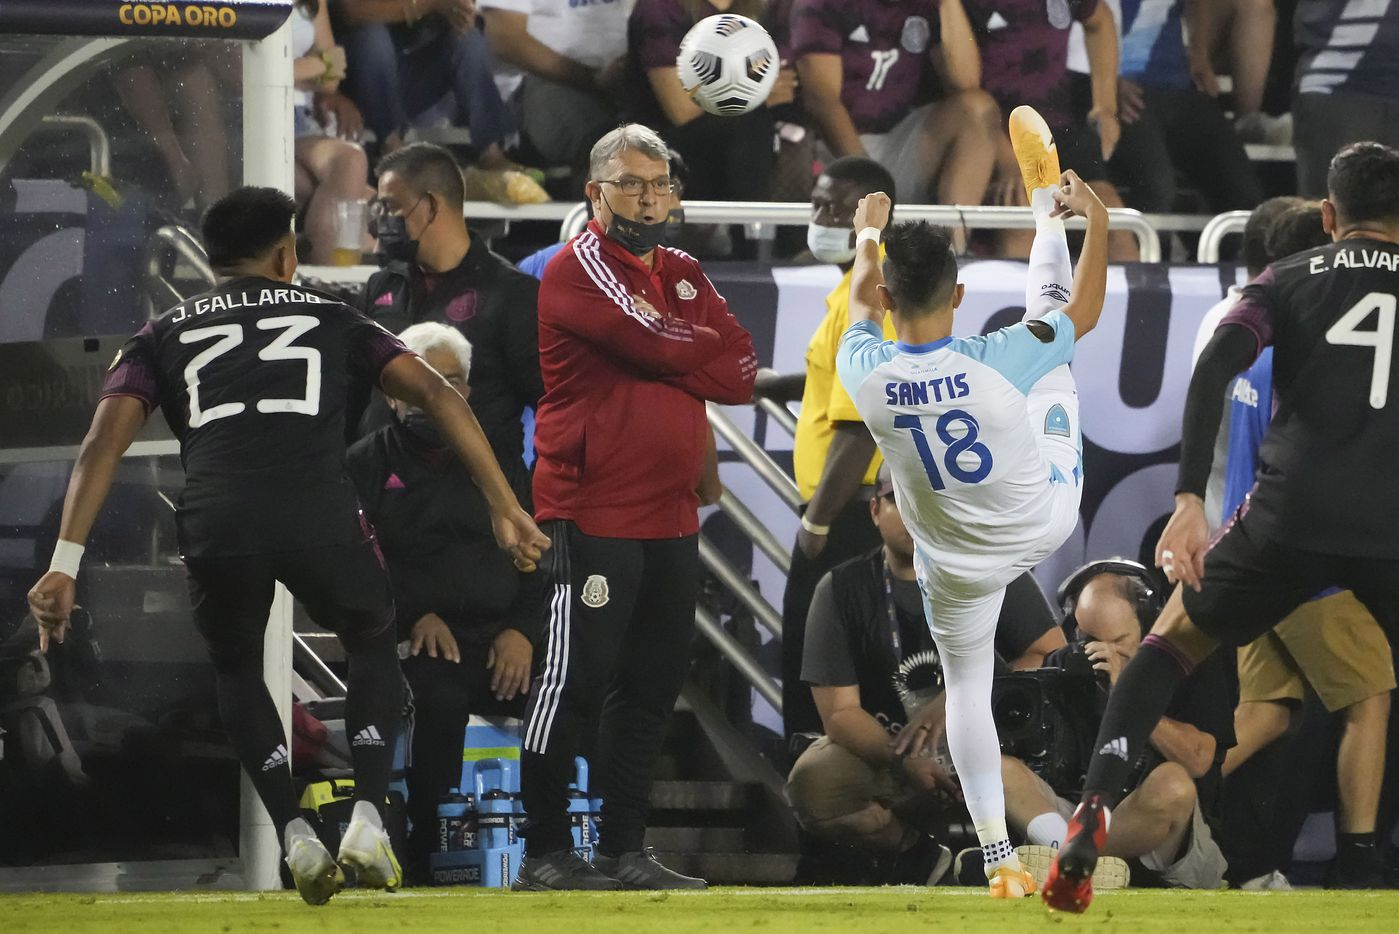 """Guatemala midfielder Oscar Santis (18) controls the ball in front of Mexico head coach Gerardo """"Tata"""" Martino  and midfielder Jesús Gallardo (23) during the first half of a CONCACAF Gold Cup Group A soccer match at the Cotton Bowl on Wednesday, July 14, 2021, in Dallas."""